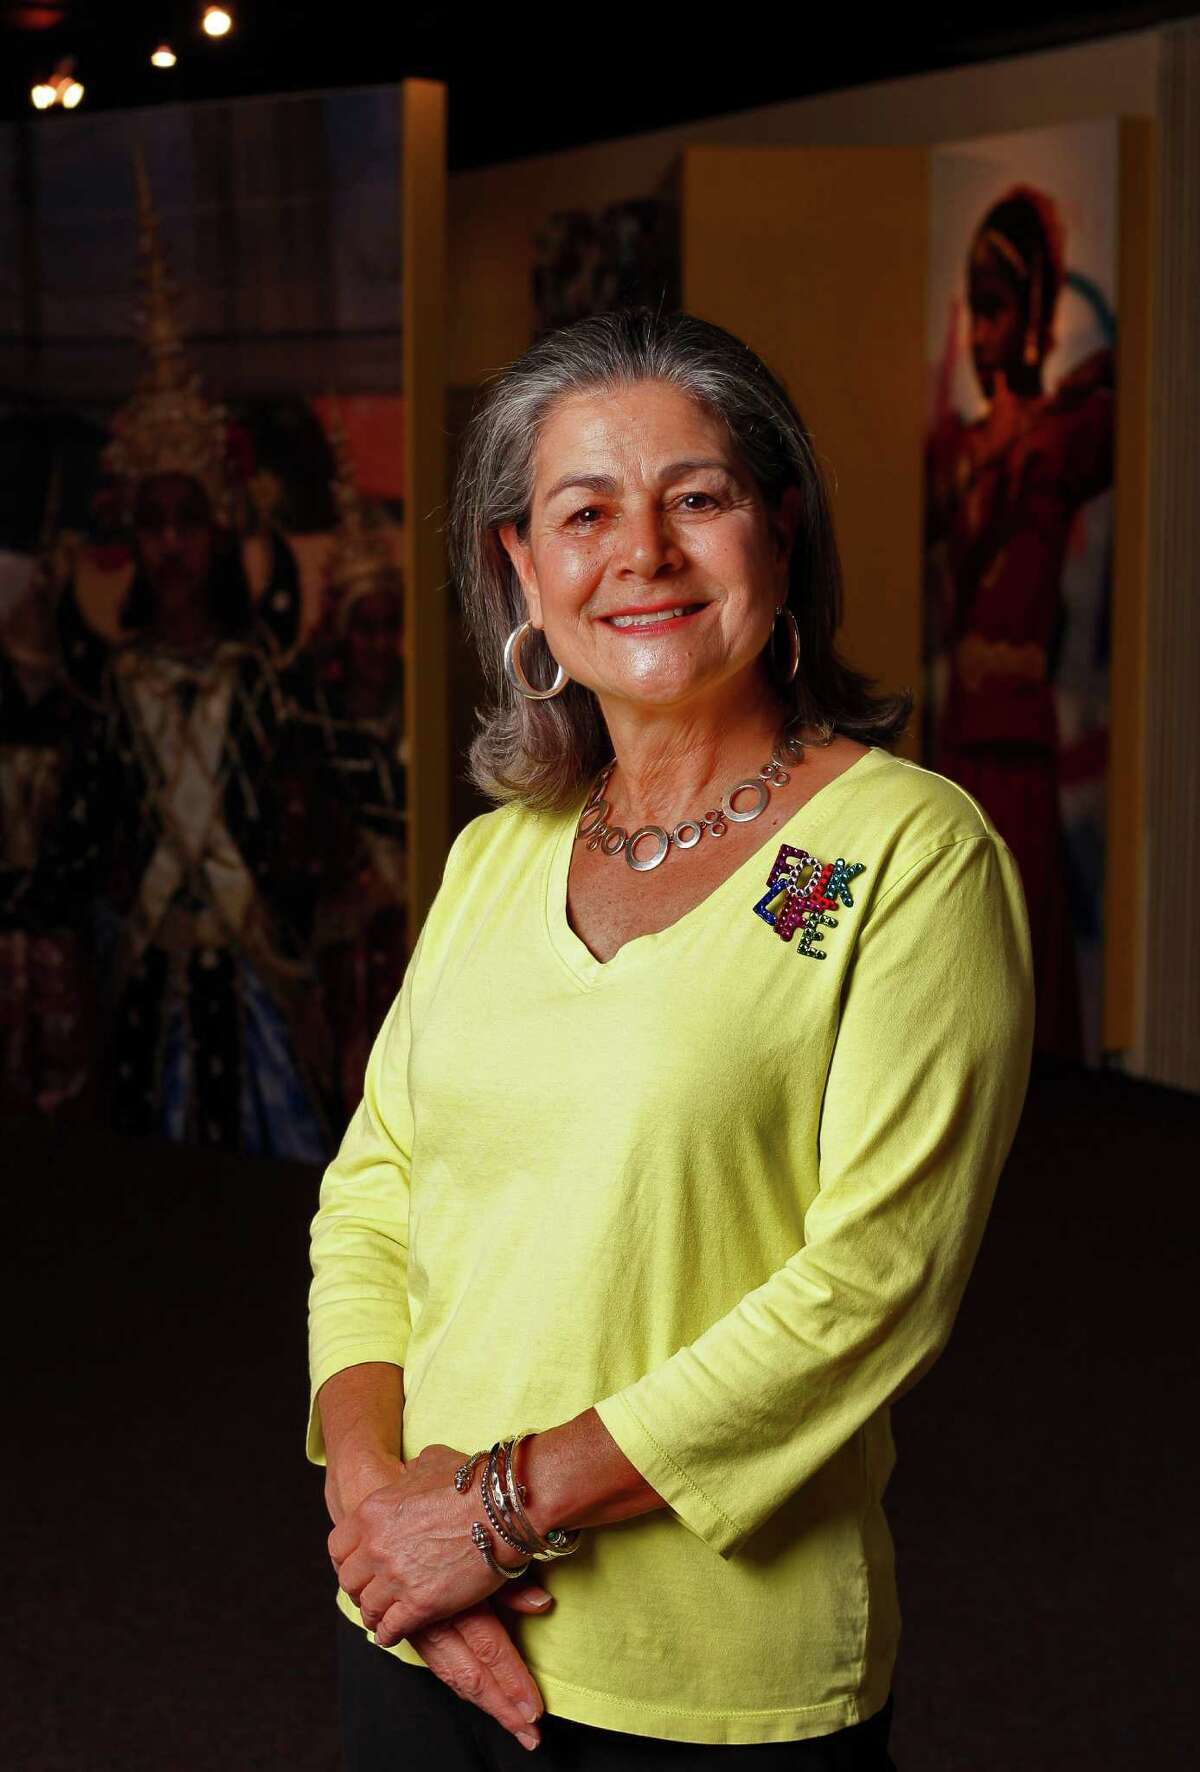 Jo Ann Andera has been involved with the Texas Folklife Festival since its inception more than 40 years ago.